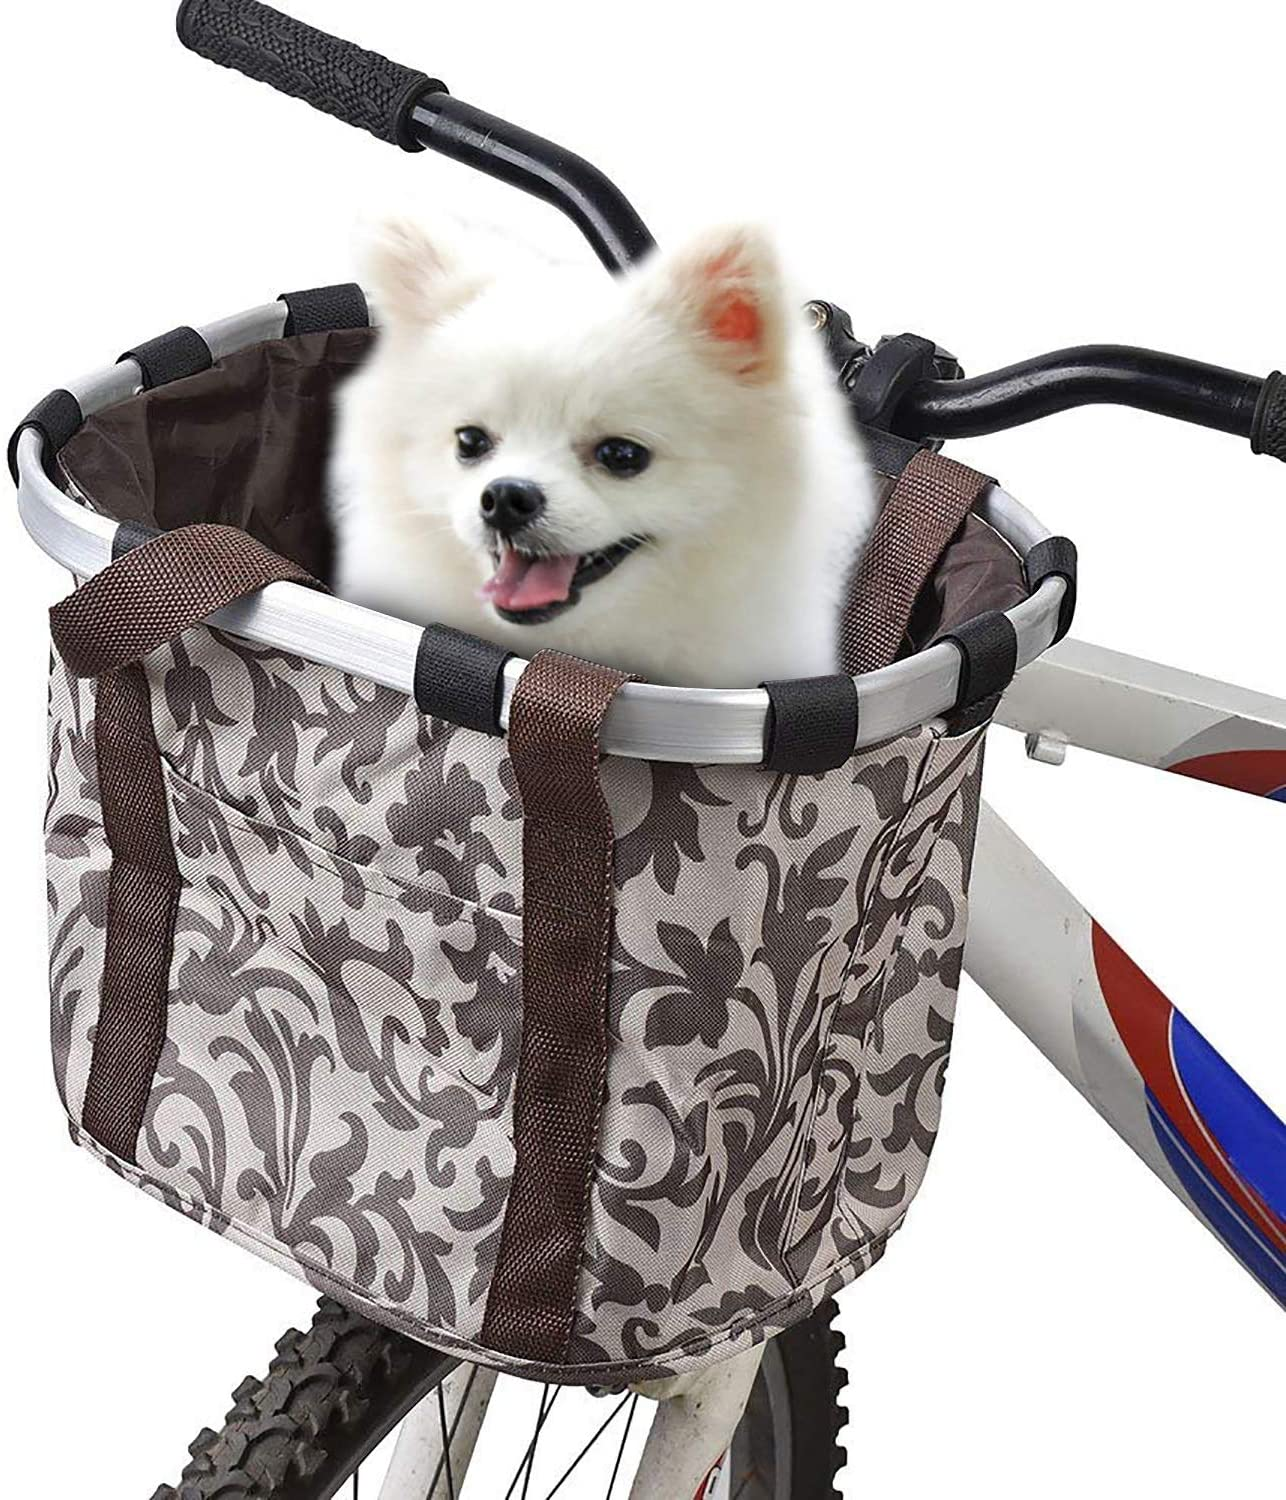 URBEST Bike Basket,Small Pets Cat Dog Folding Carrier,Removable Bicycle Handlebar Front Basket, Quick Release and Easy to Install,Detachable Cycling Bag